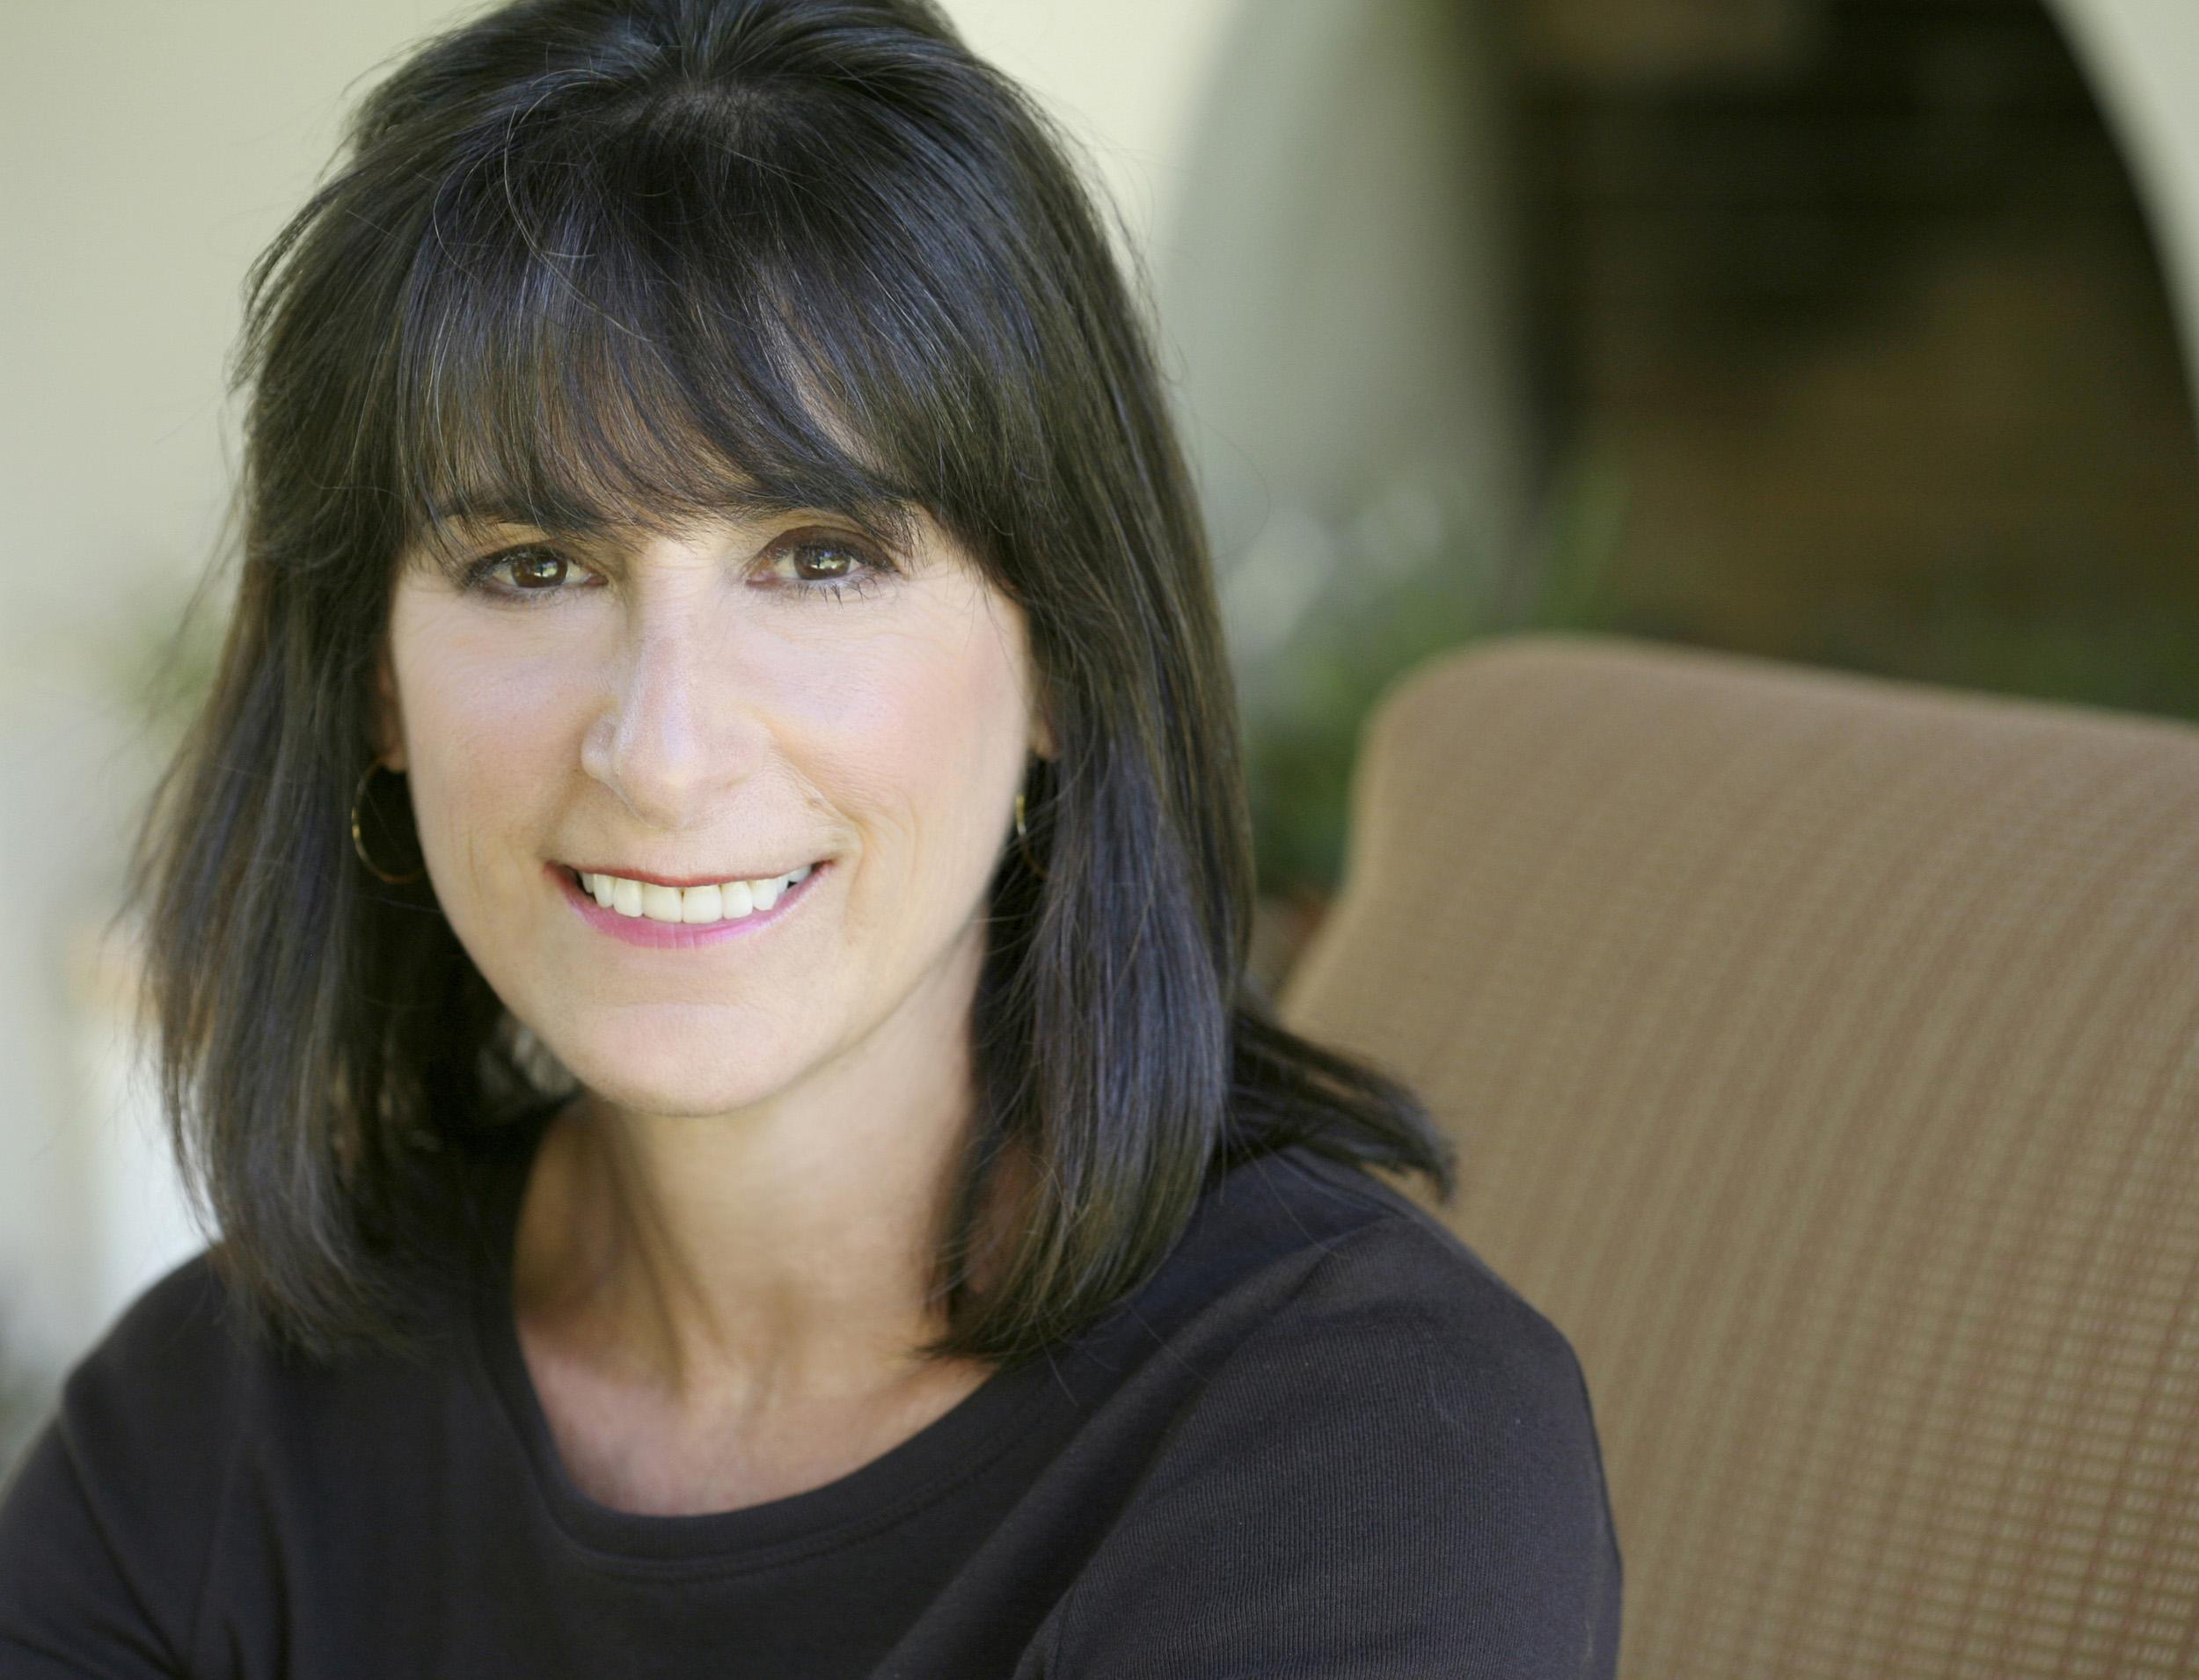 Karla Bonoff is an acclaimed singer/songwriter. Bonoff will be performing at The Kirkland Performance Center, a unique venue where you can catch some of the brightest stars on stage in an intimate one-of a kind setting. Executive Director Jeff Lockhart gave Seattle Refined an exclusive sneak peek into their exciting 2018-2919 season. Photo courtesy of Karla Bonoff.<p></p>